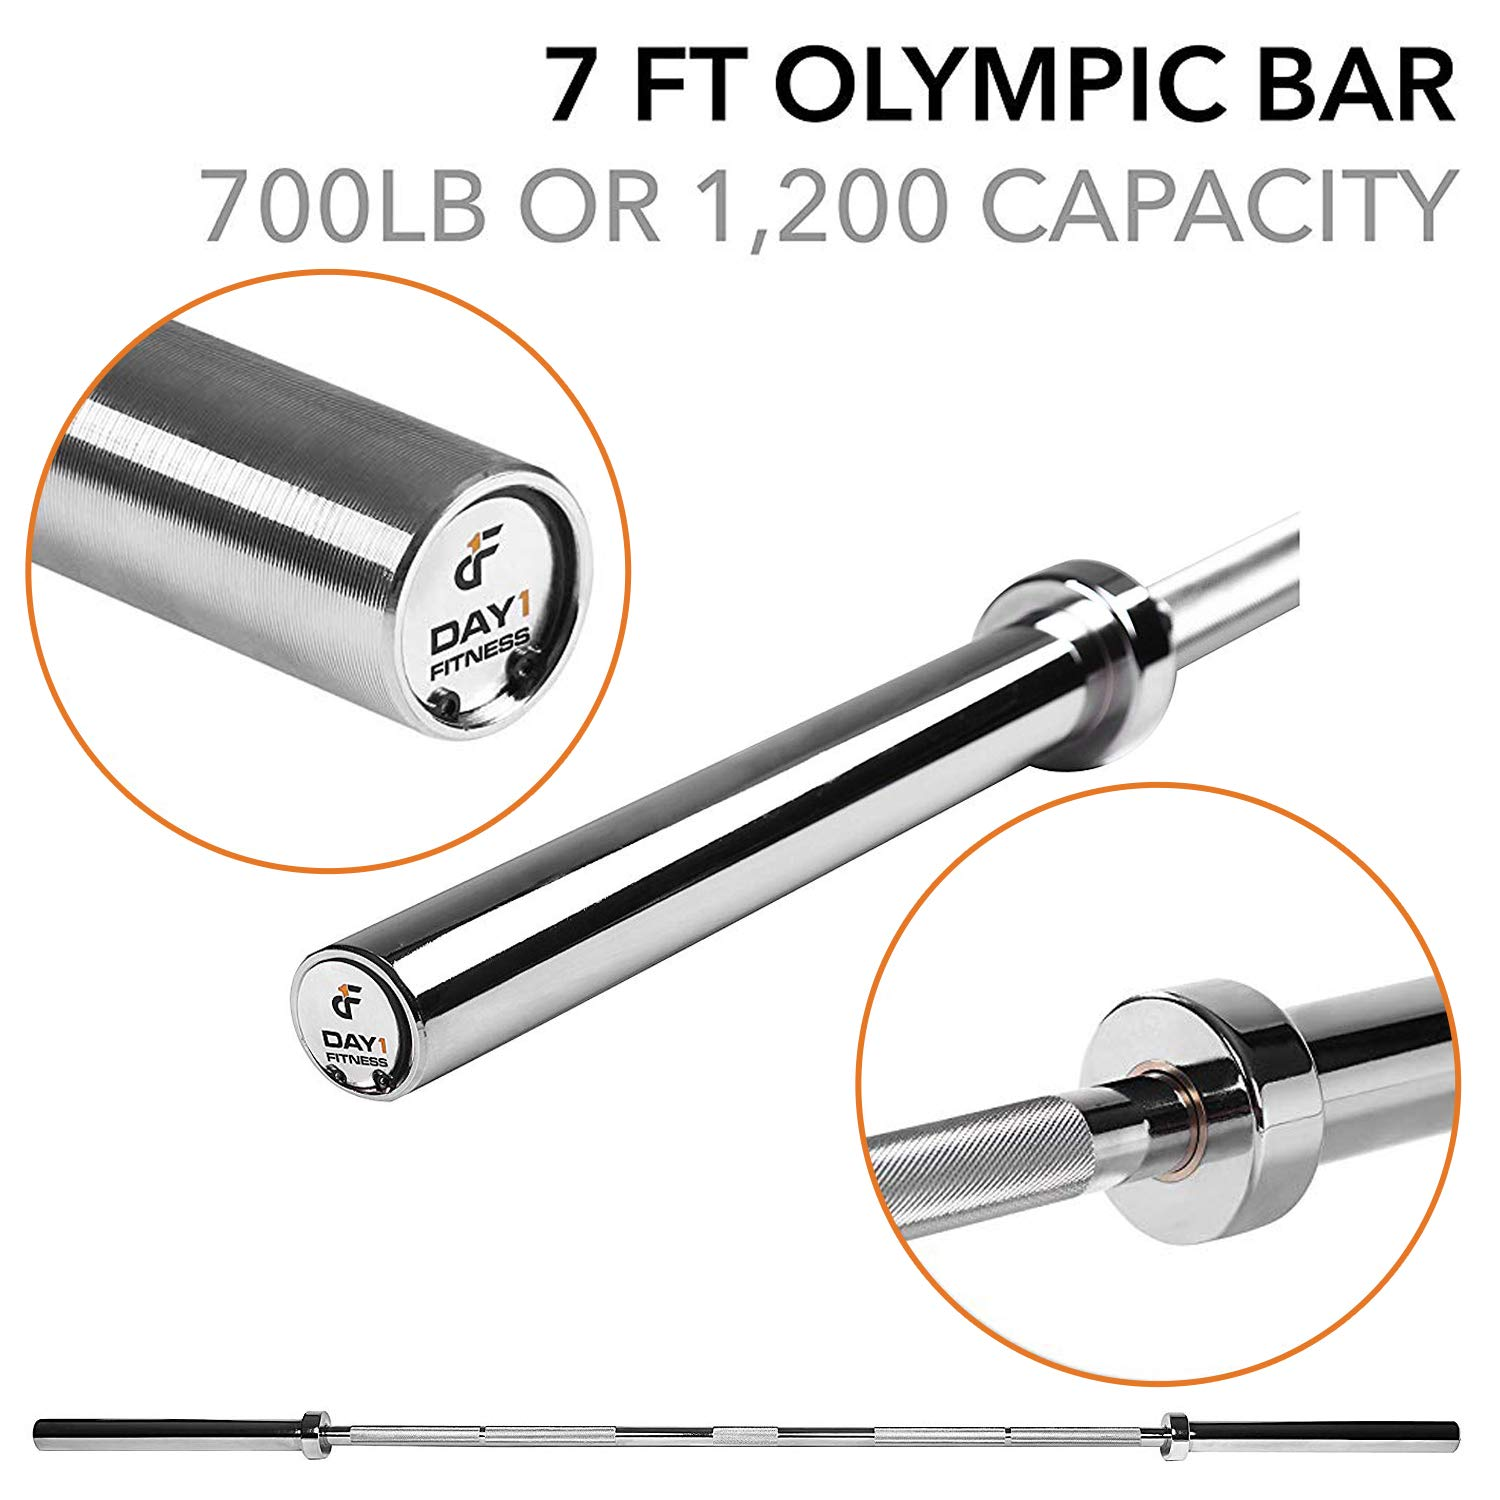 """Olympic Barbell – 2"""", 700 Pound Capacity, 7' by D1F for Weightlifting, Bench Pressing, Bodybuilding, Powerlifting - Durable Crossfit Bar - Heavy-Duty Steel Bars and Barbells, Accommodates 2"""" Plates"""